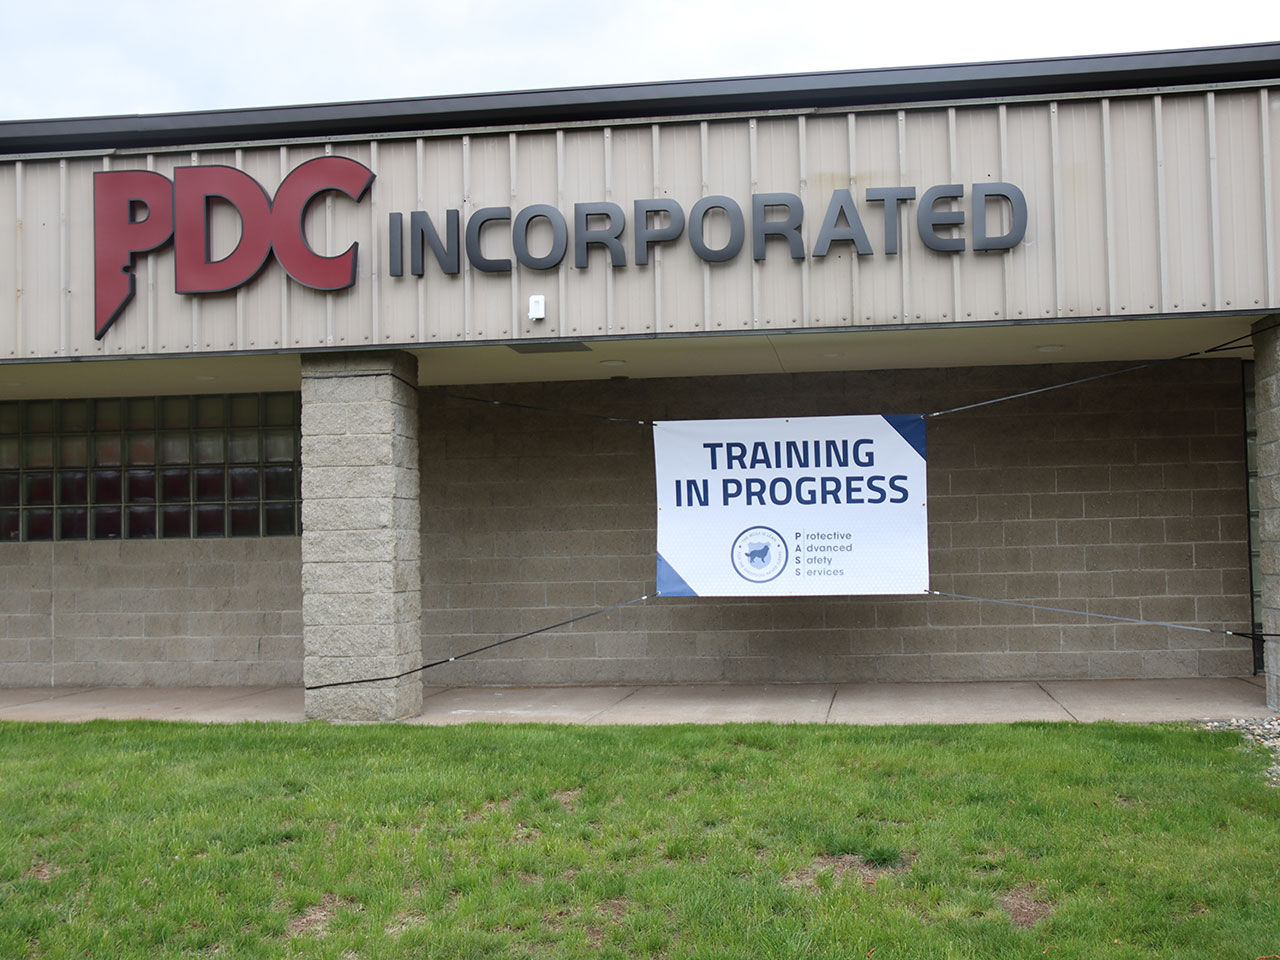 PDC Inc active shooter training banner